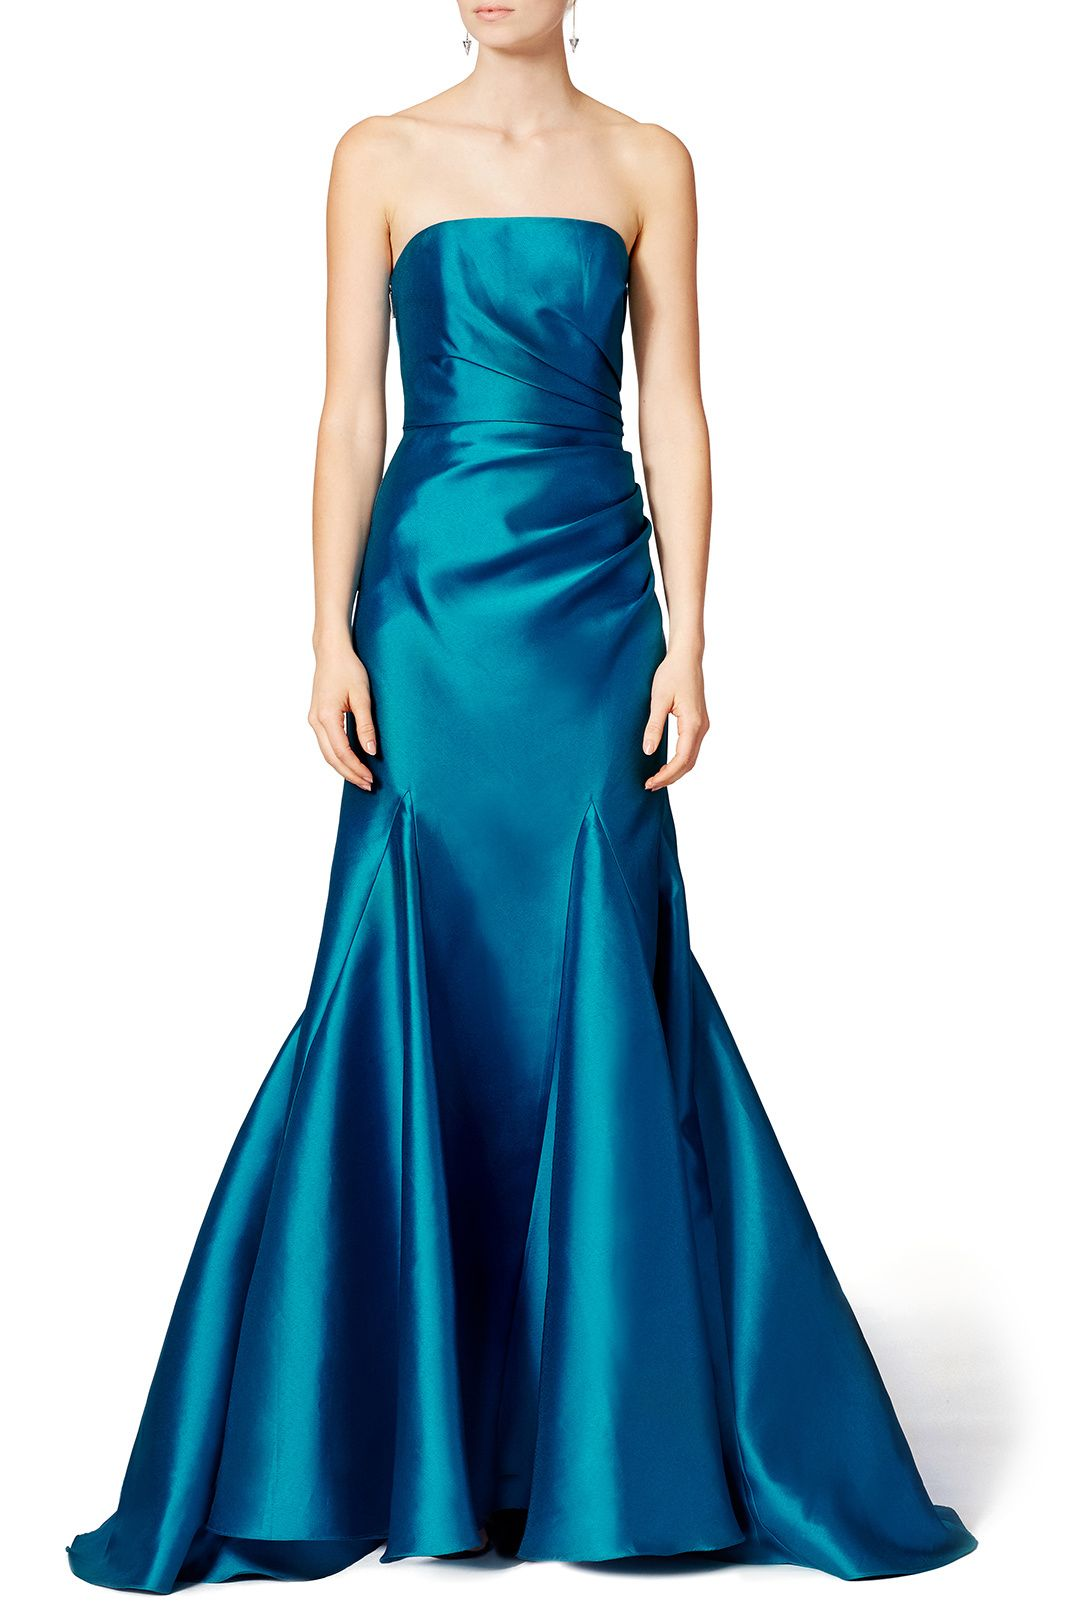 Peacock Gown | Badgley mischka, Peacocks and Gowns